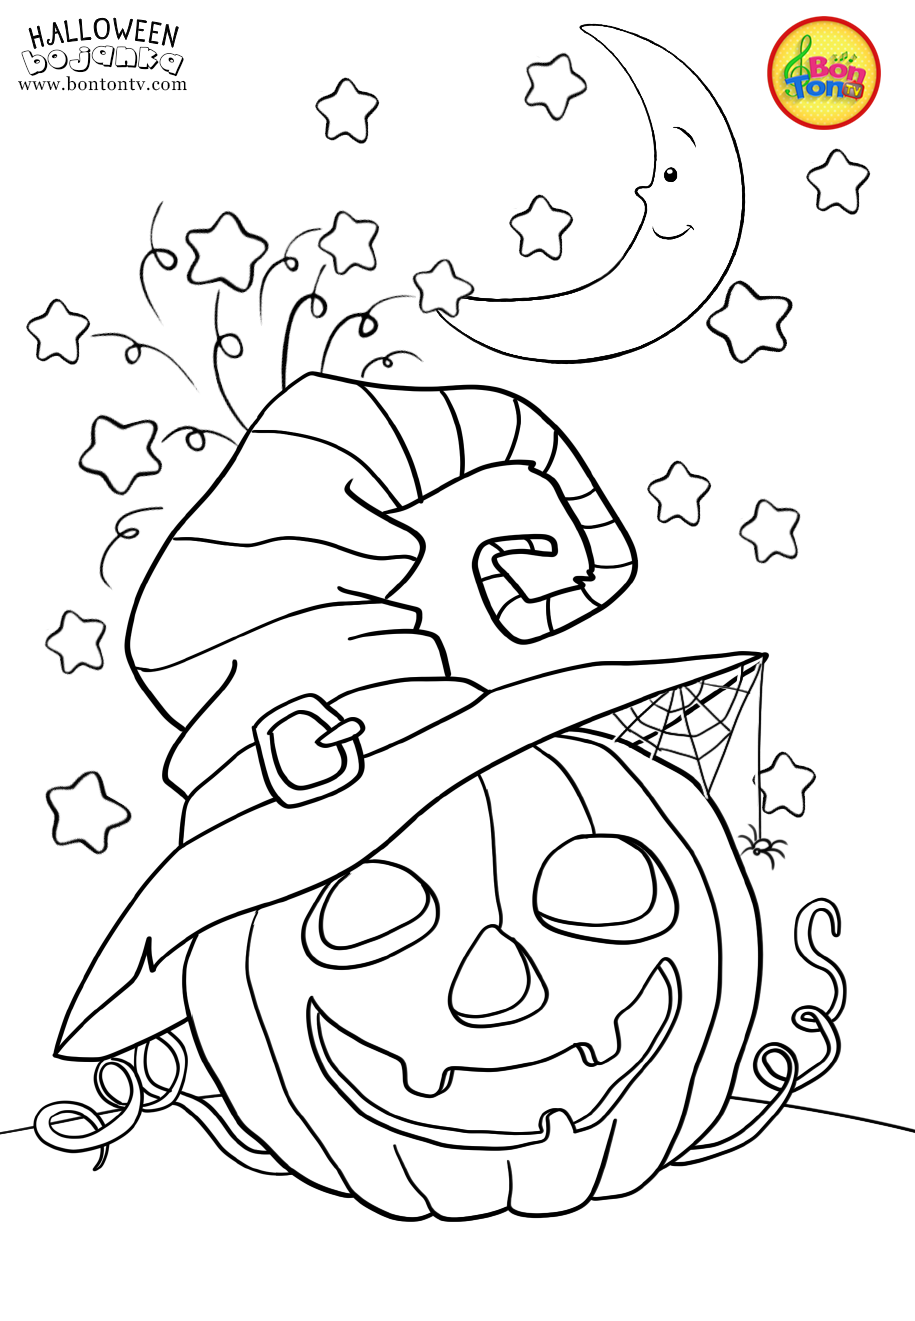 - Halloween Coloring Pages For Kids - Free Preschool Printables